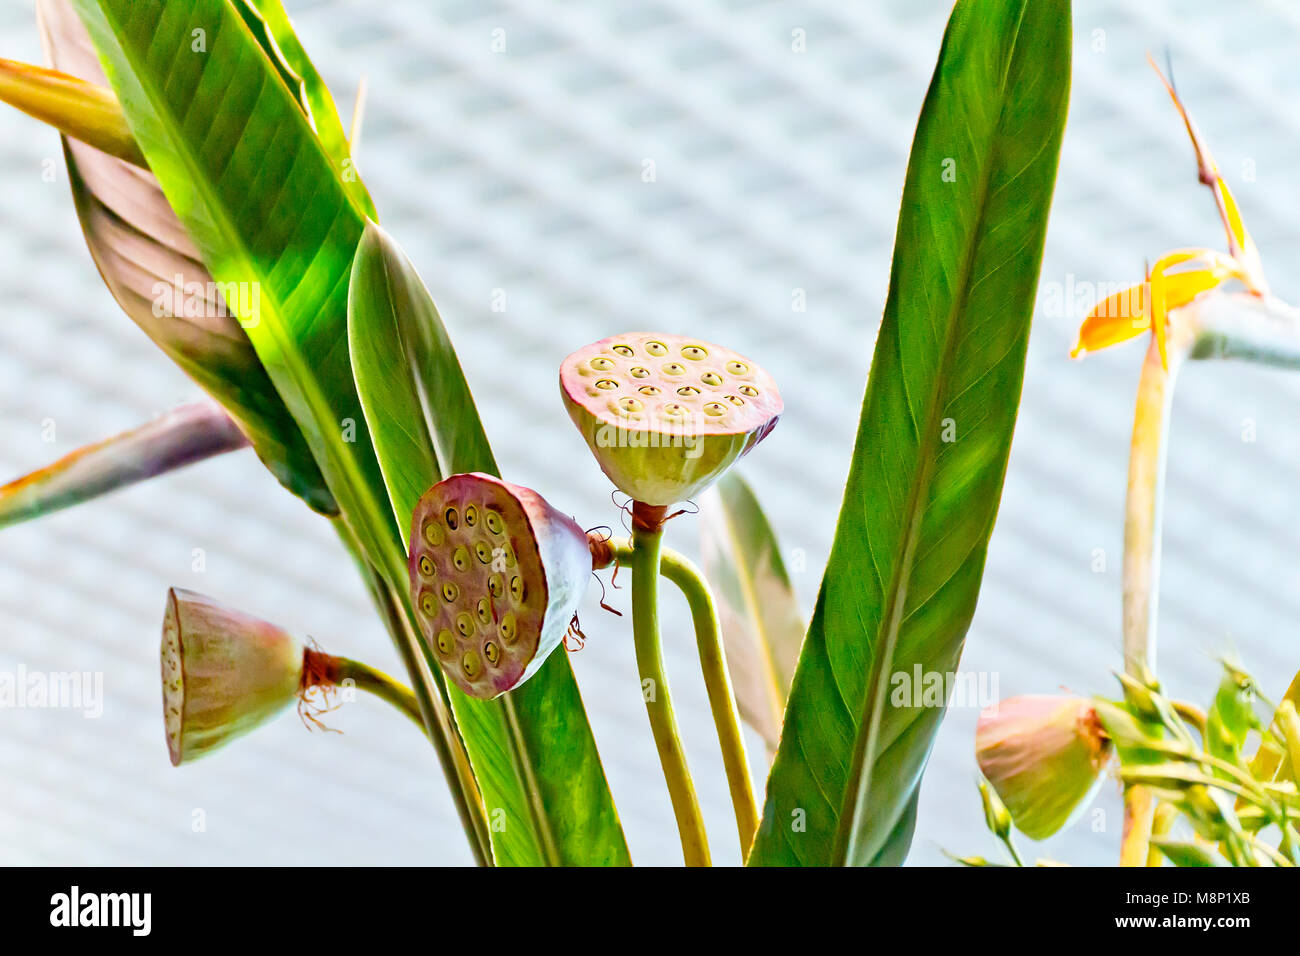 Photo calyxes of seed pod of lotus flower - Stock Image